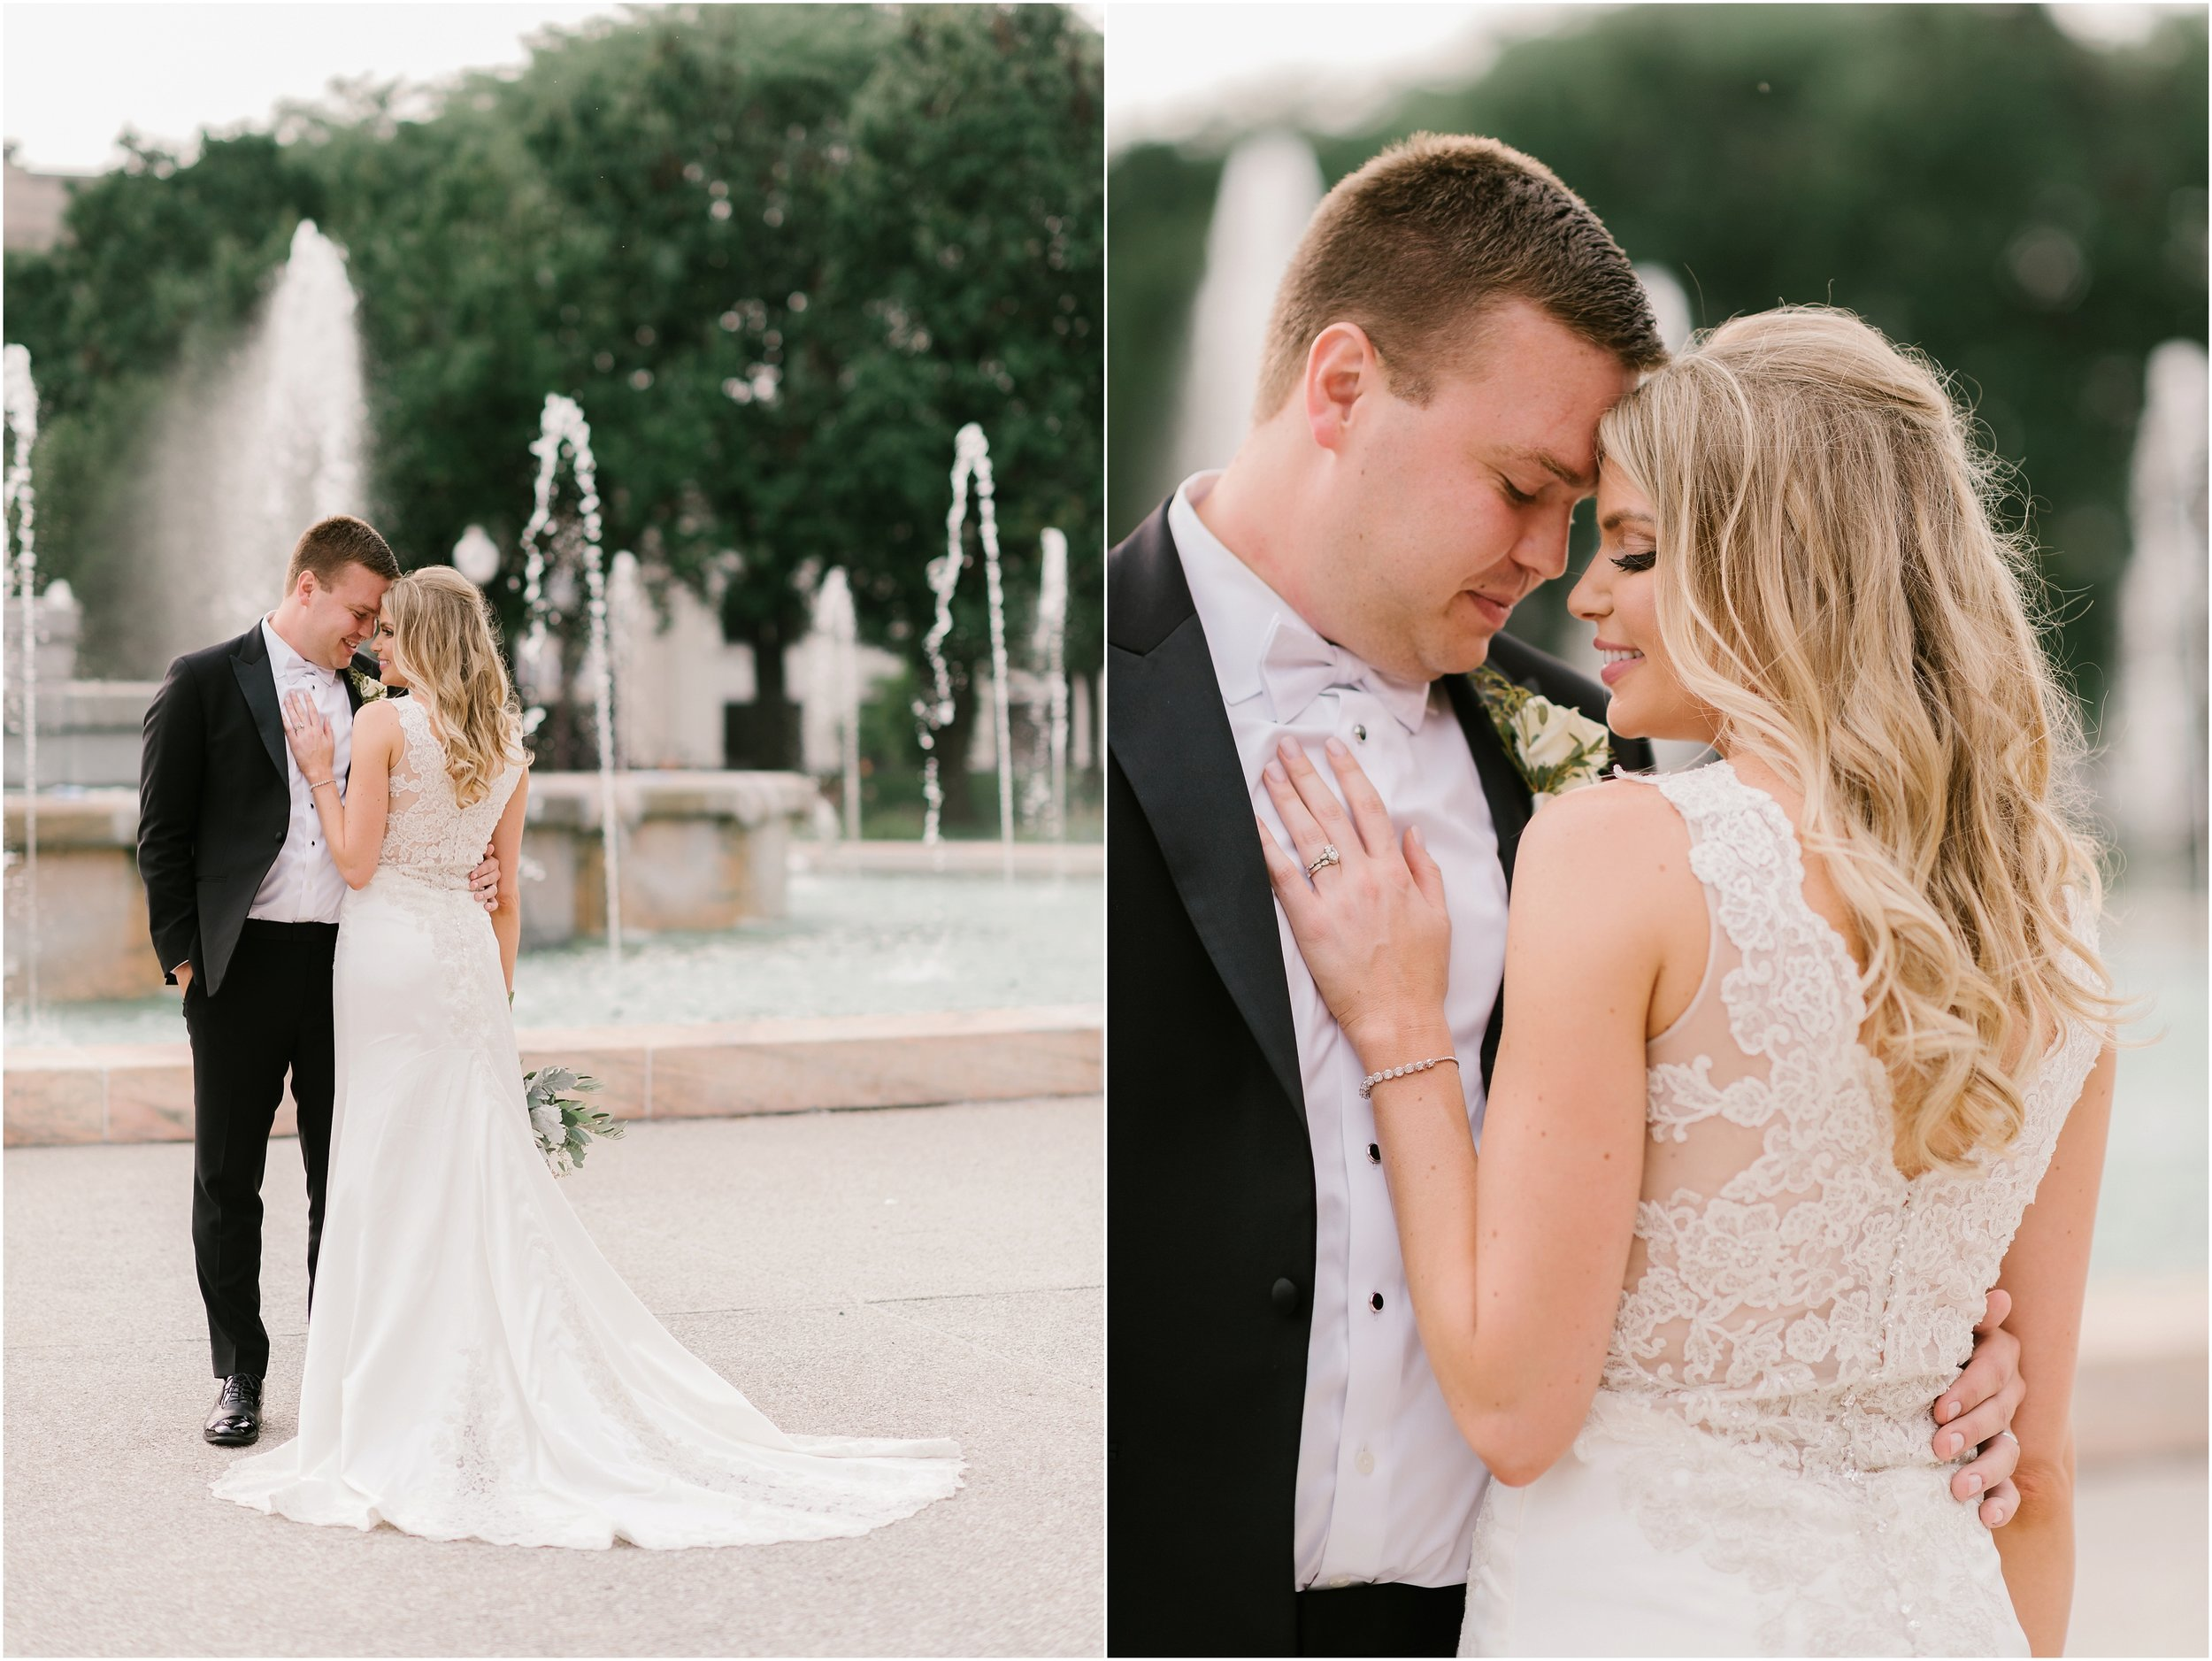 Rebecca_Shehorn_Photography_Indianapolis_Wedding_Photographer_8968.jpg